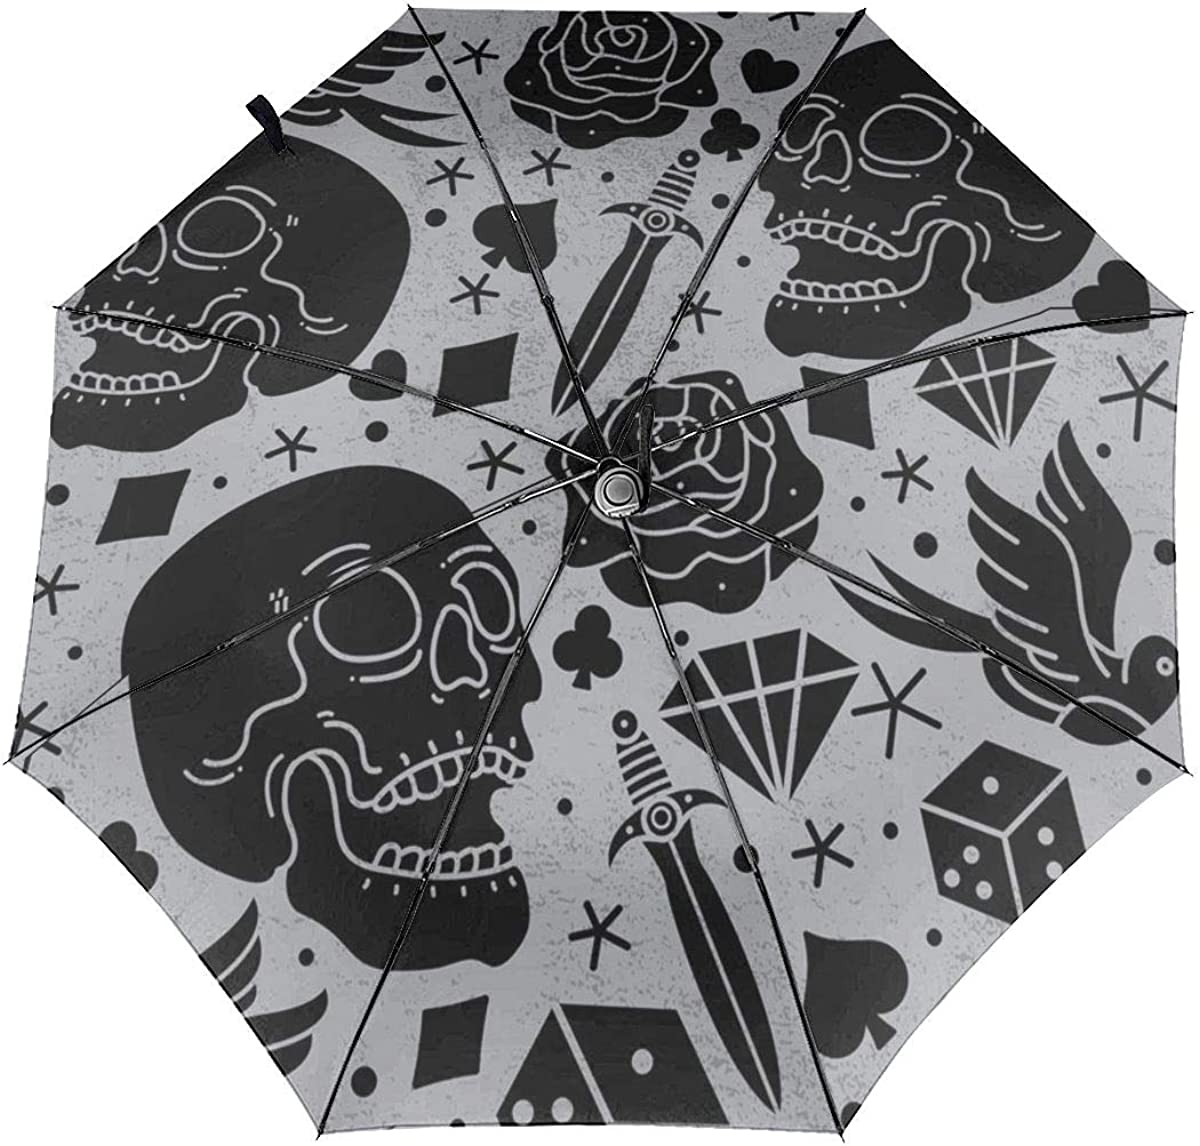 Pattern Horror Tattoo Vector Image Compact Travel Umbrella Windproof Reinforced Canopy 8 Ribs Umbrella Auto Open And Close Button Personalized